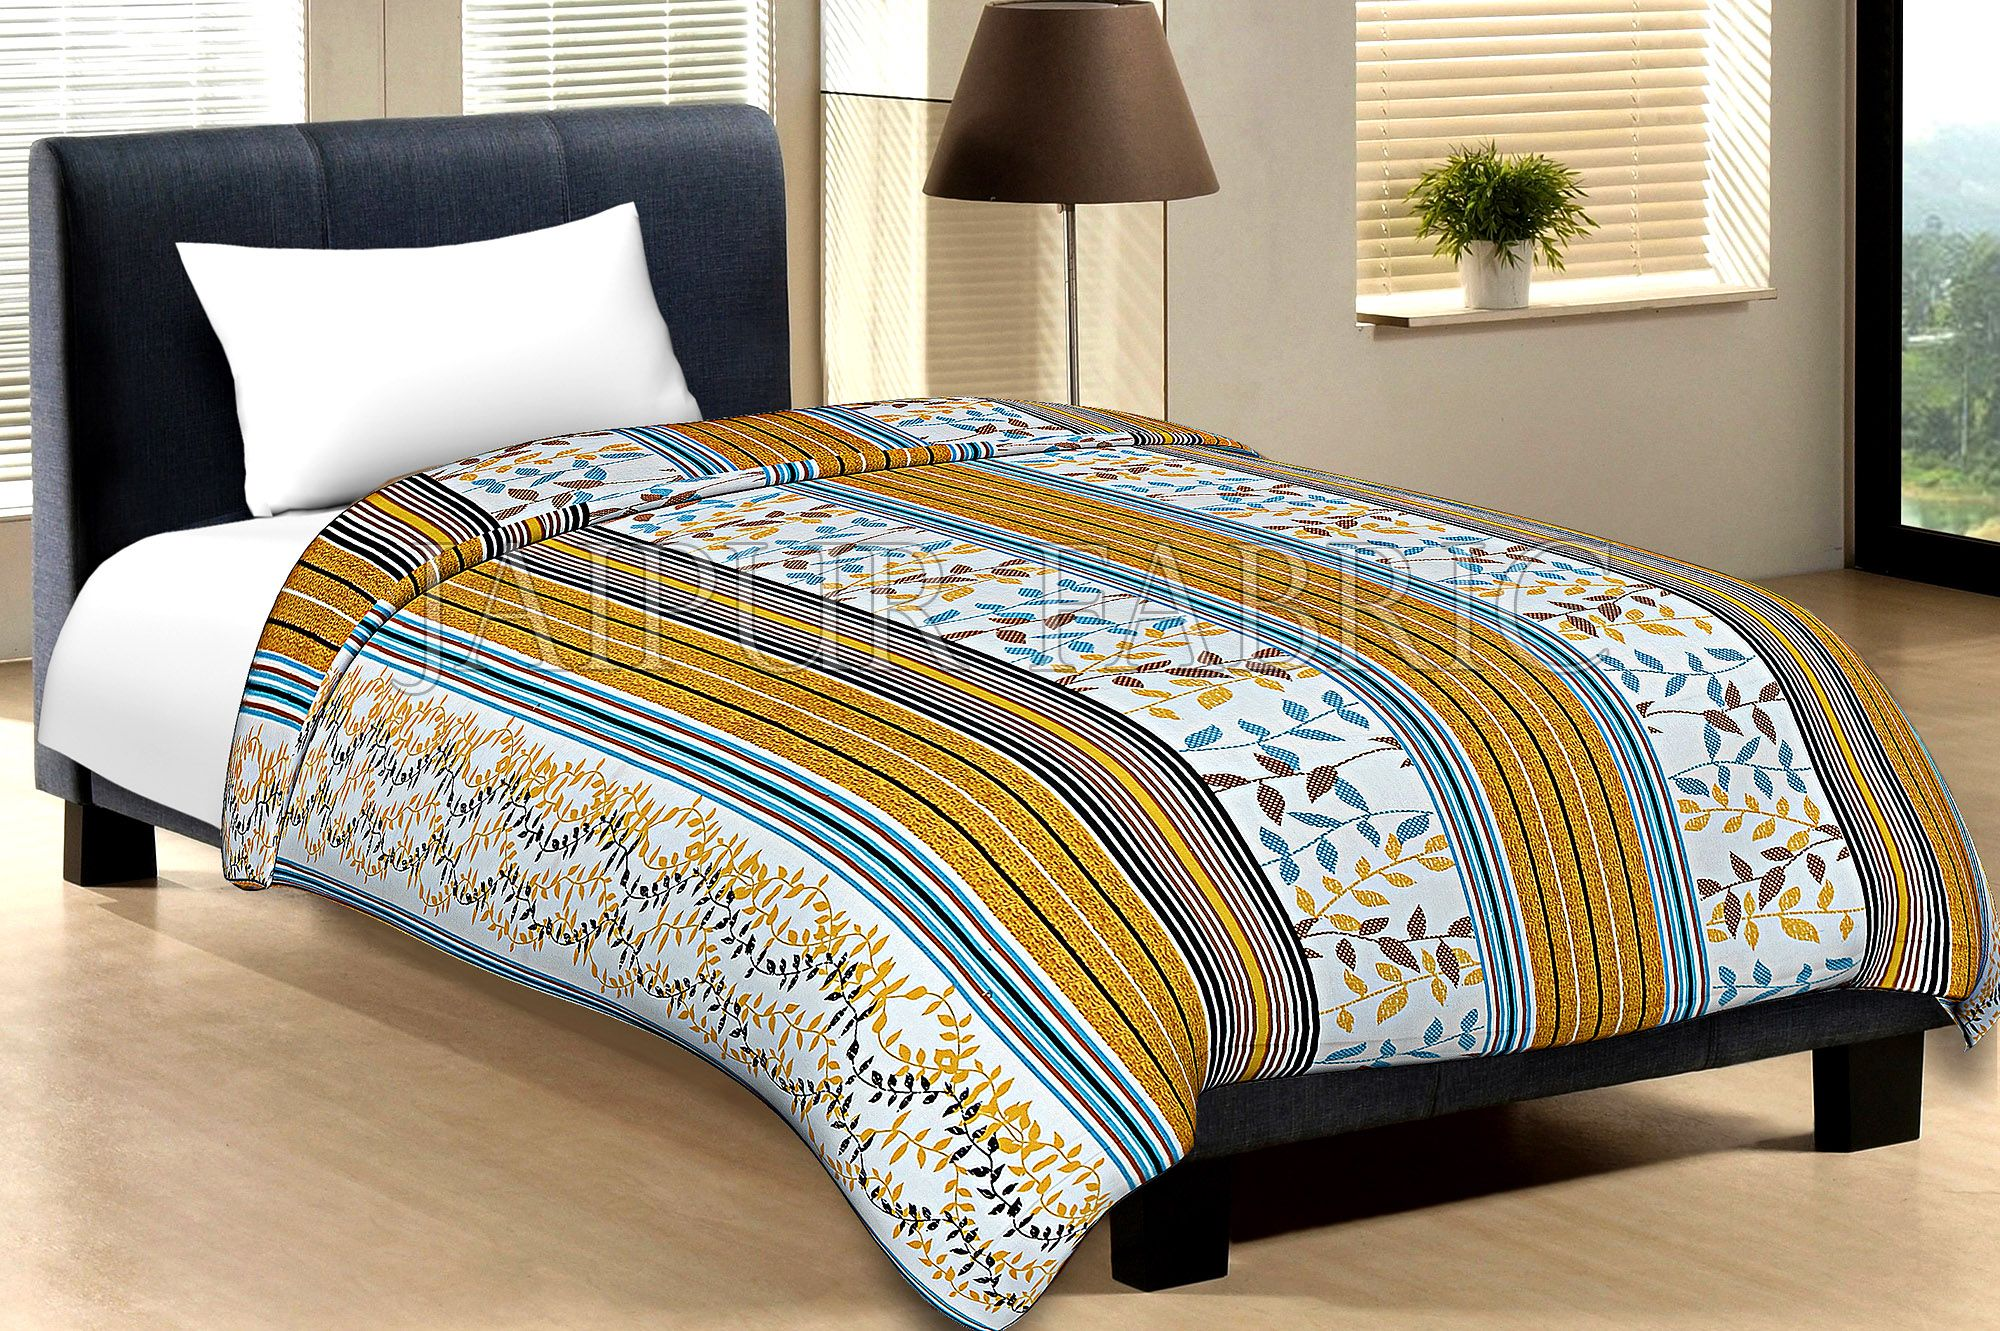 White Base Yellow And Multi Colour Lining With Leaf Pattern Cotton Single Bed Sheet without pillow Cover